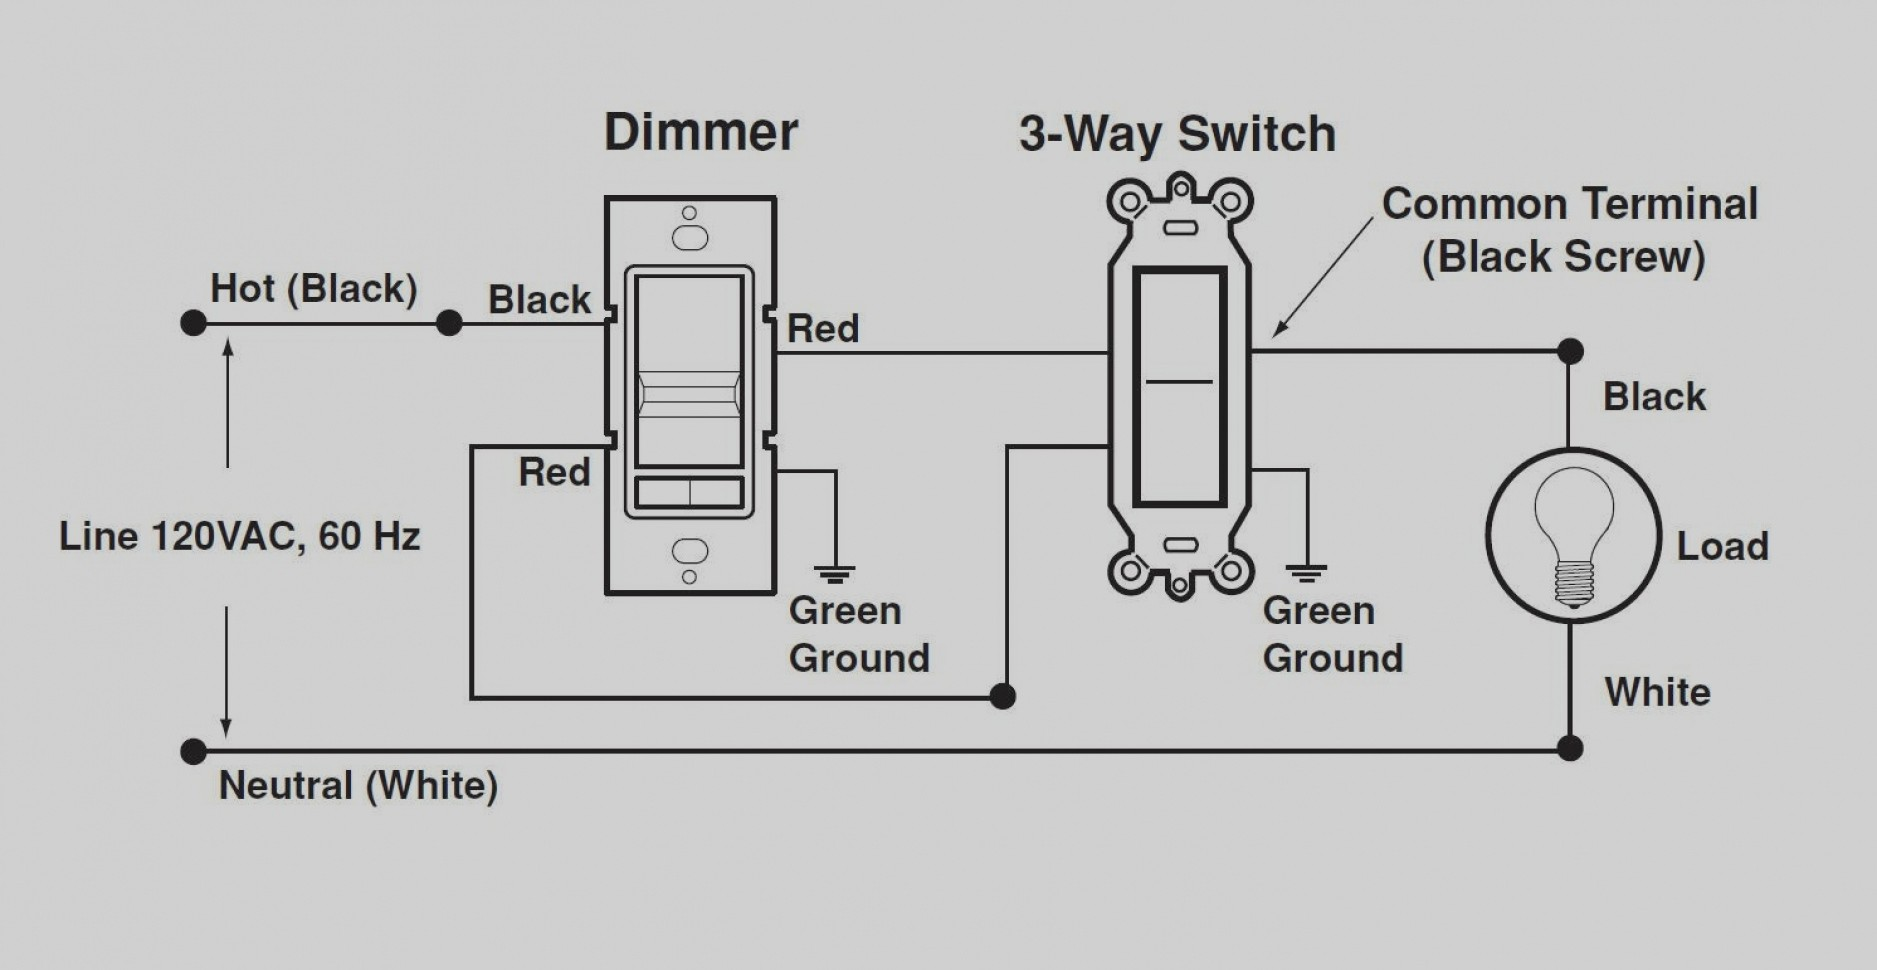 hight resolution of 3 way switch wiring diagram pdf unique wiring diagram image led light bar wiring diagram lang